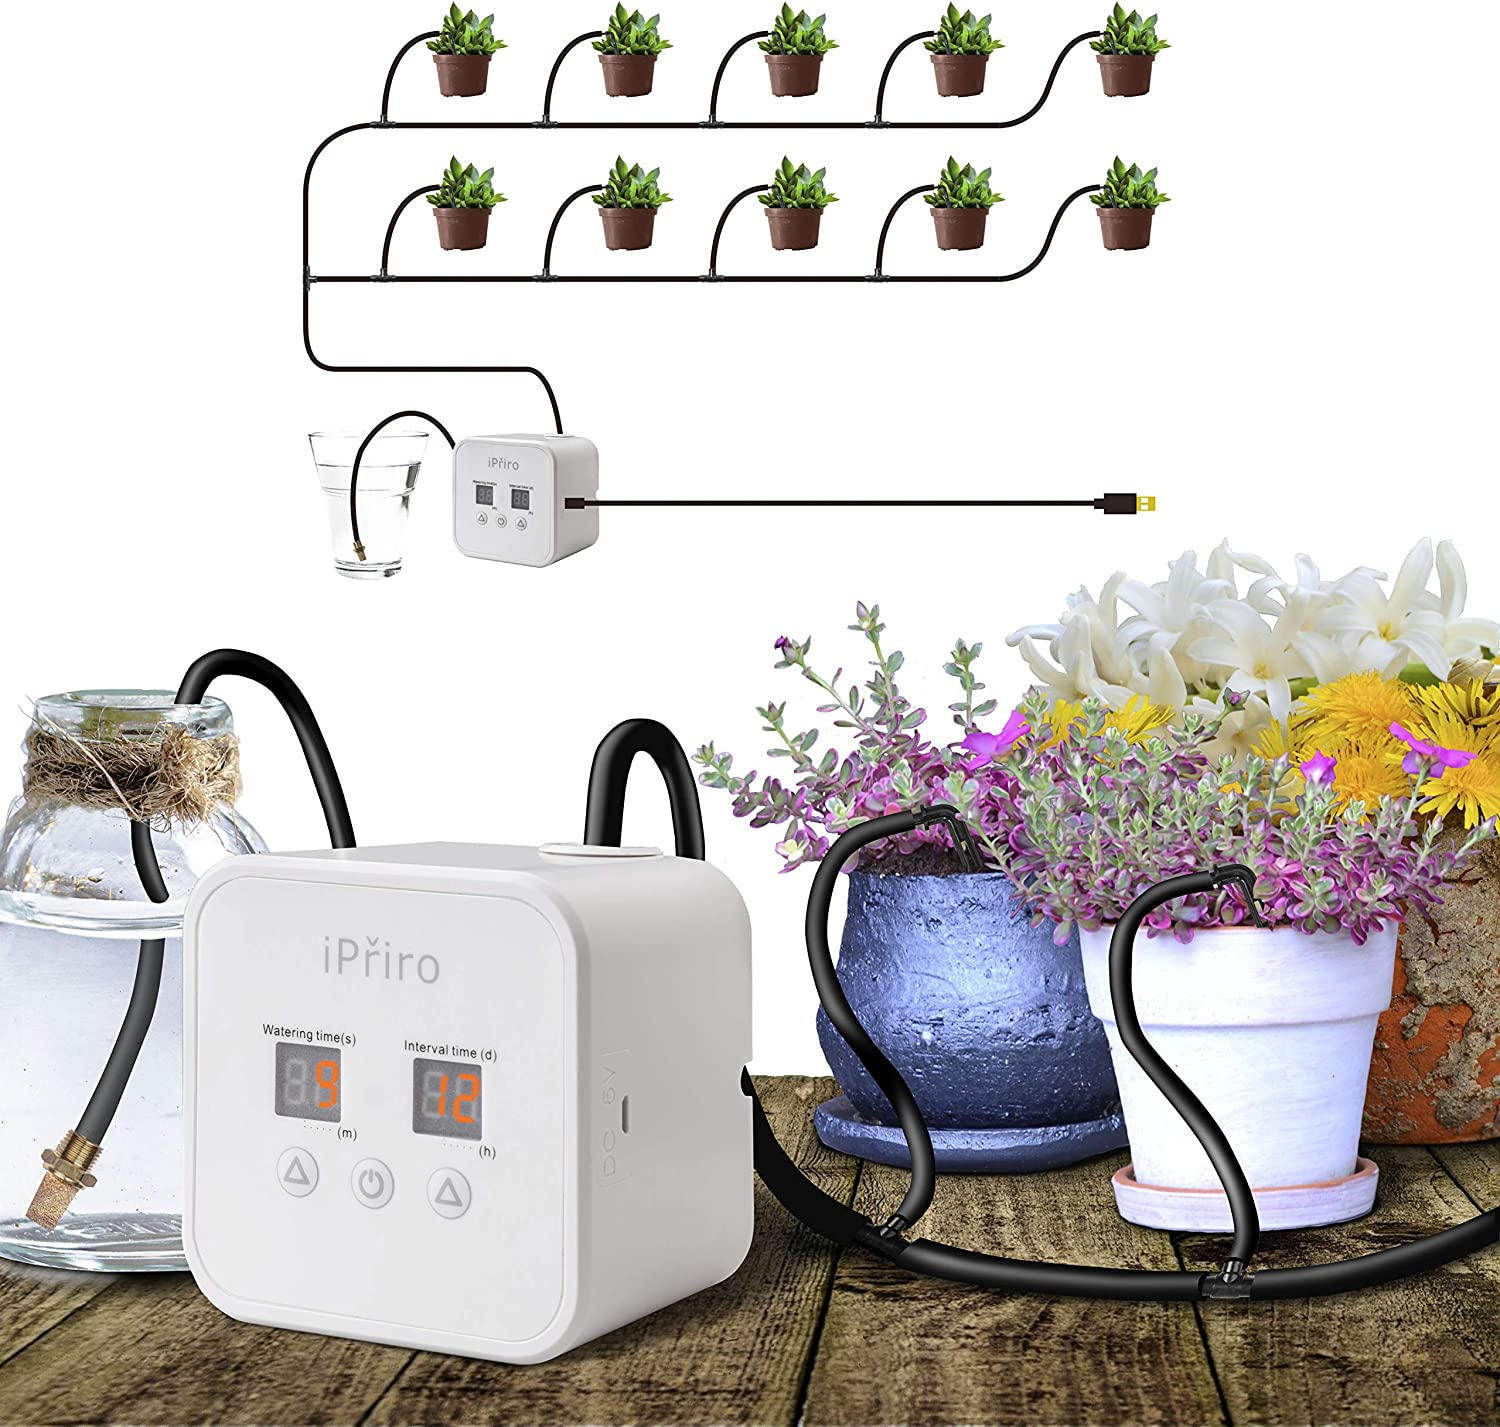 iPriro Indoor Automatic Watering System, Plant Cultivation Equipment with a Watering Cycle of up to 30 Days, with 5V USB, Indoor Pot drip Irrigation Set, for 10 Plants, Care Equipment